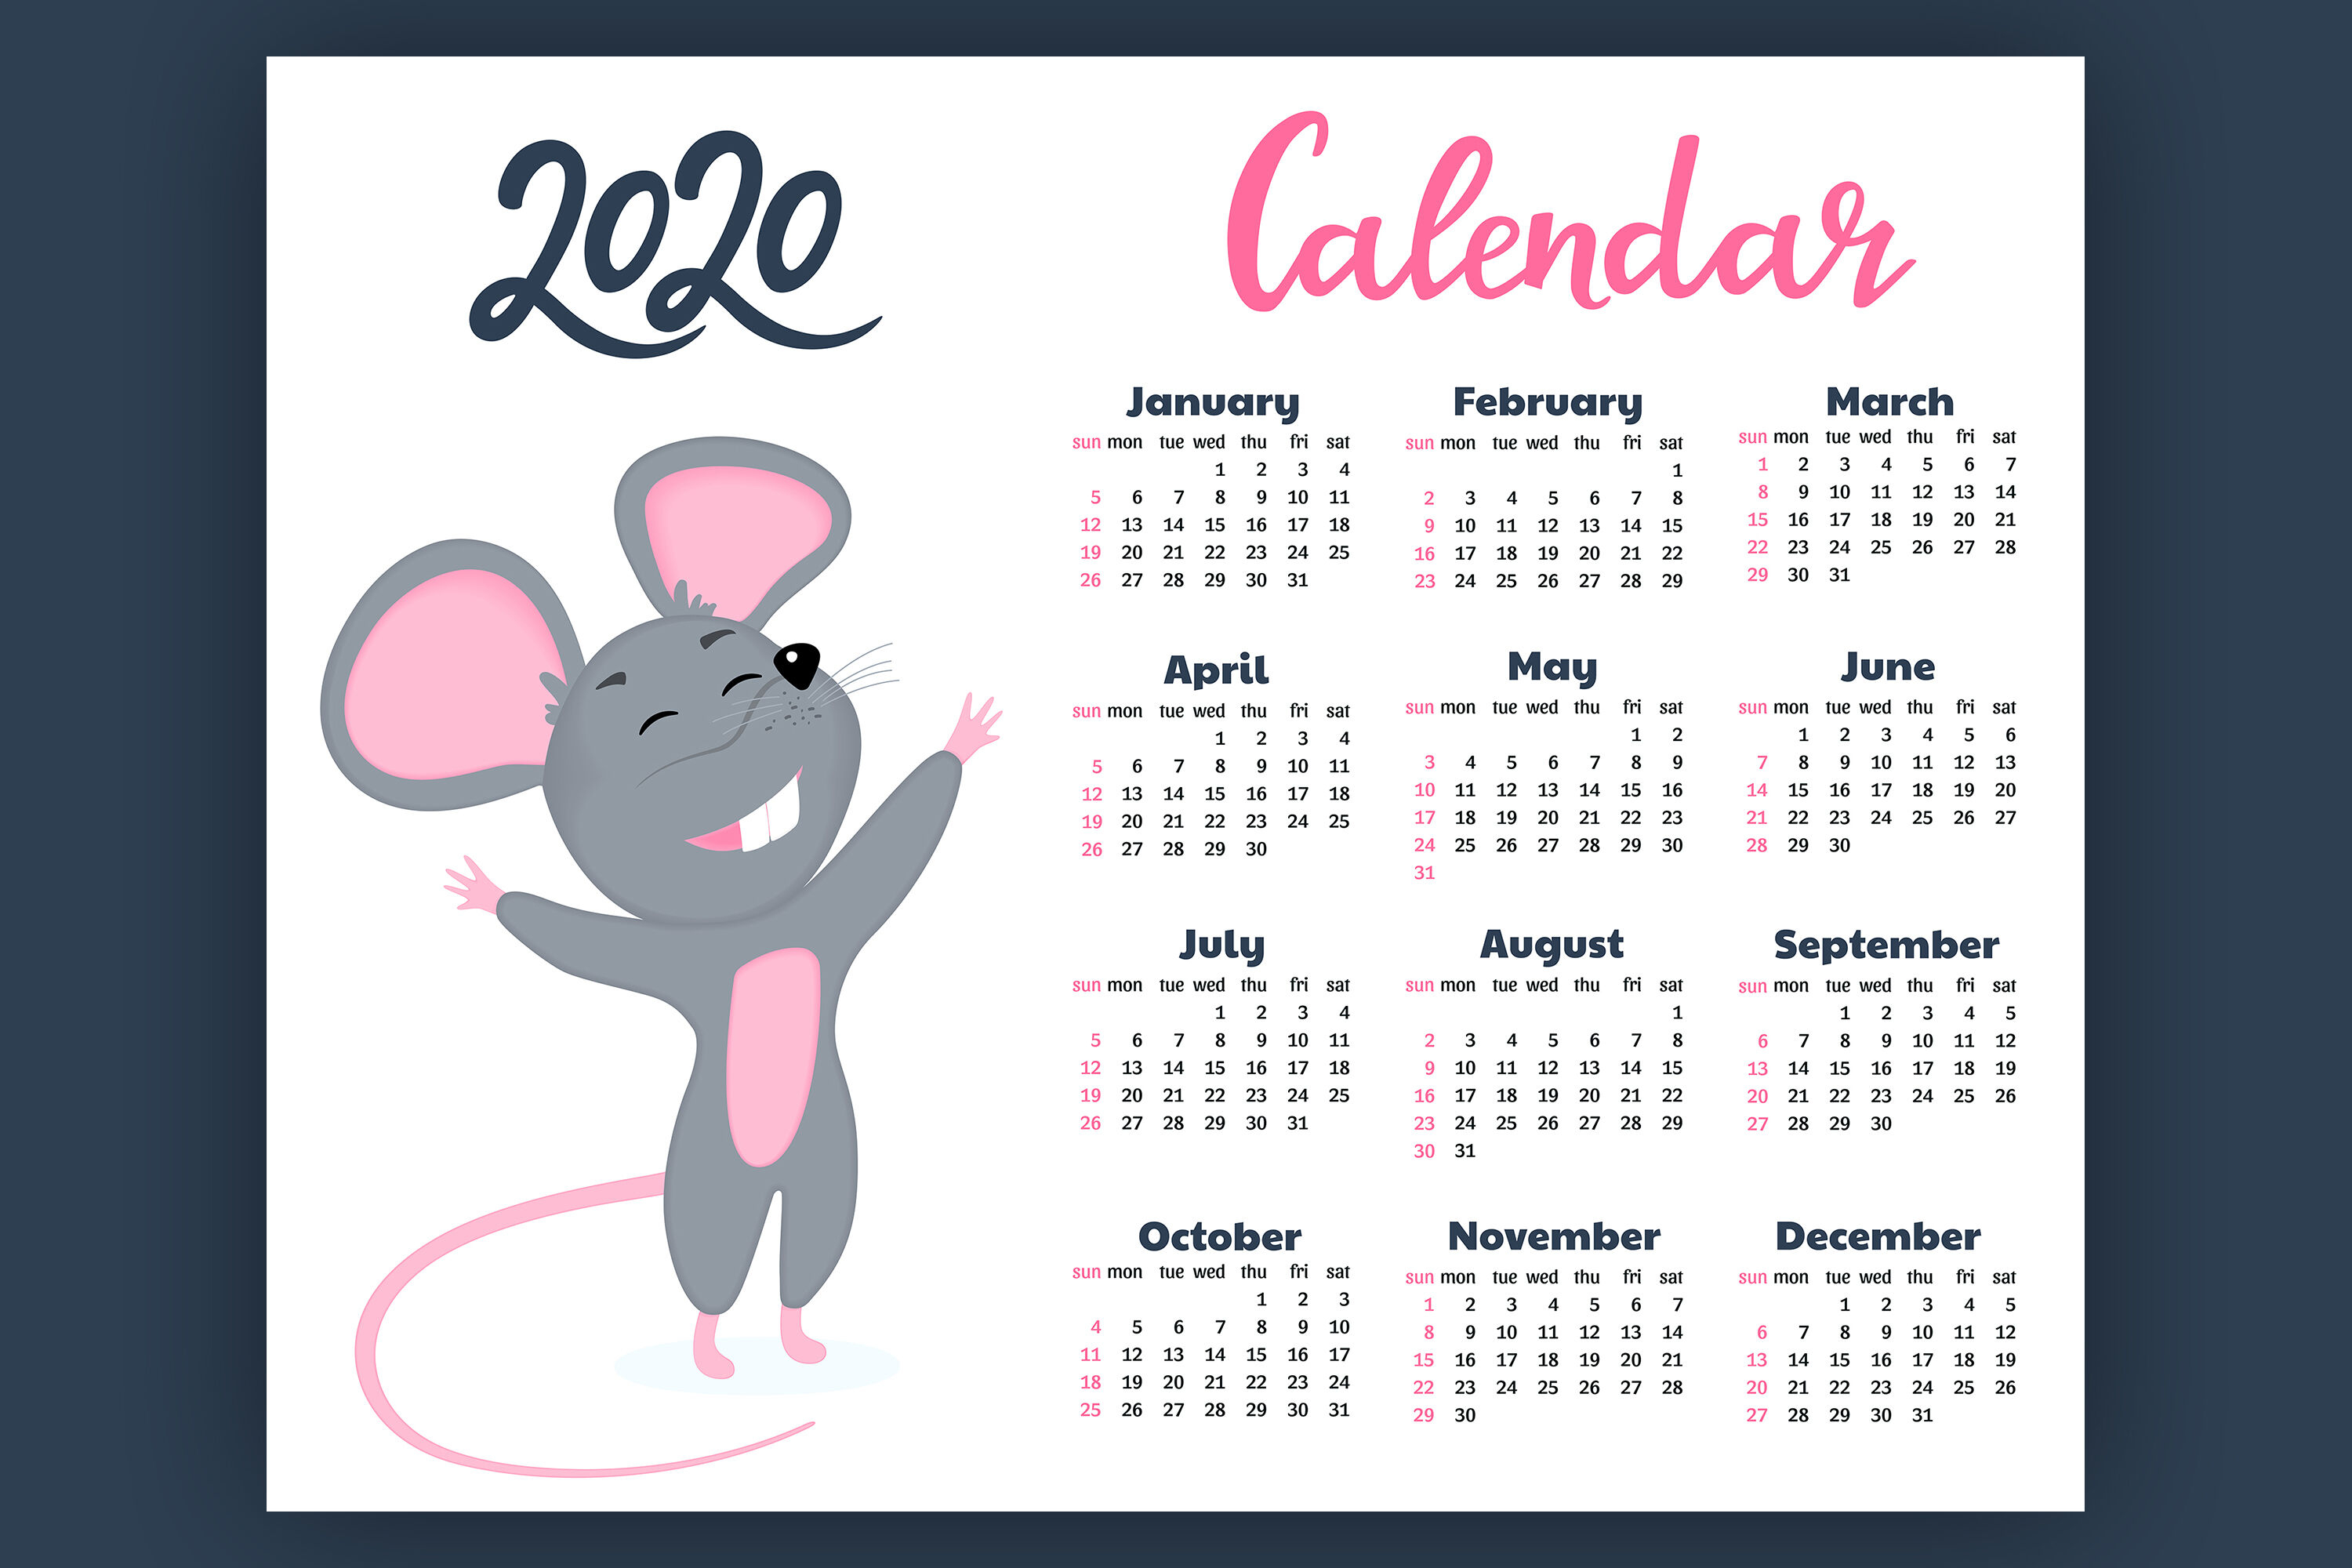 Calendar For 2020 From Sunday To Saturday. Year Of The Rat pertaining to Sunday To Saturday Calendar